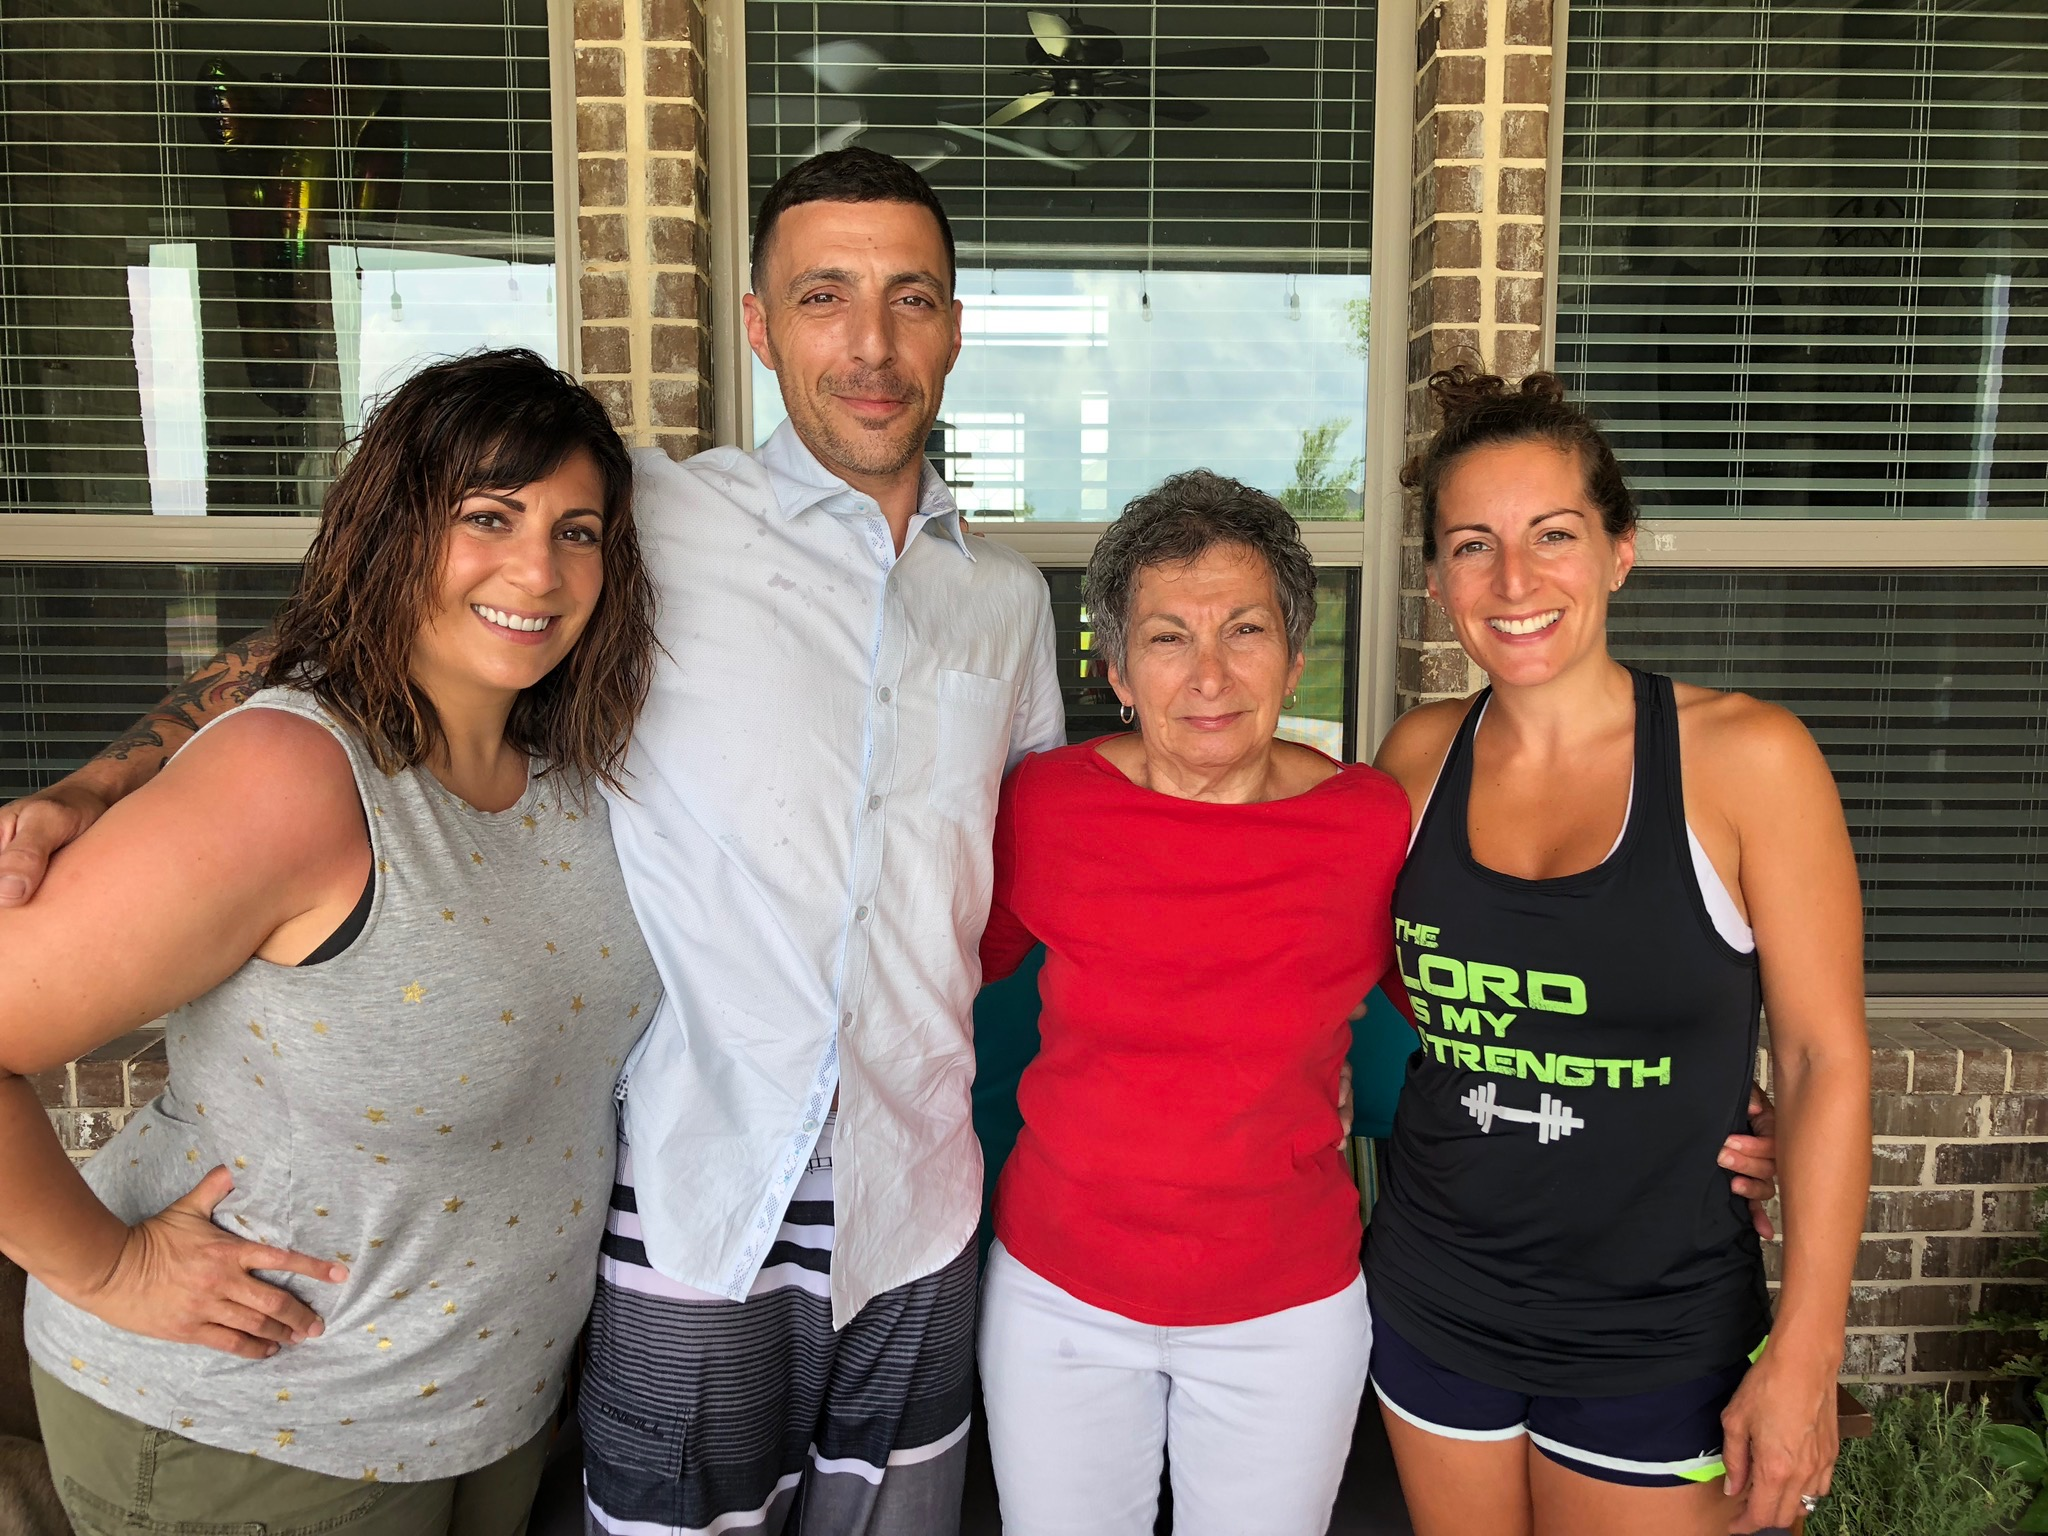 Jess with brother Artie, mom Eileen, and sister Rebecca.